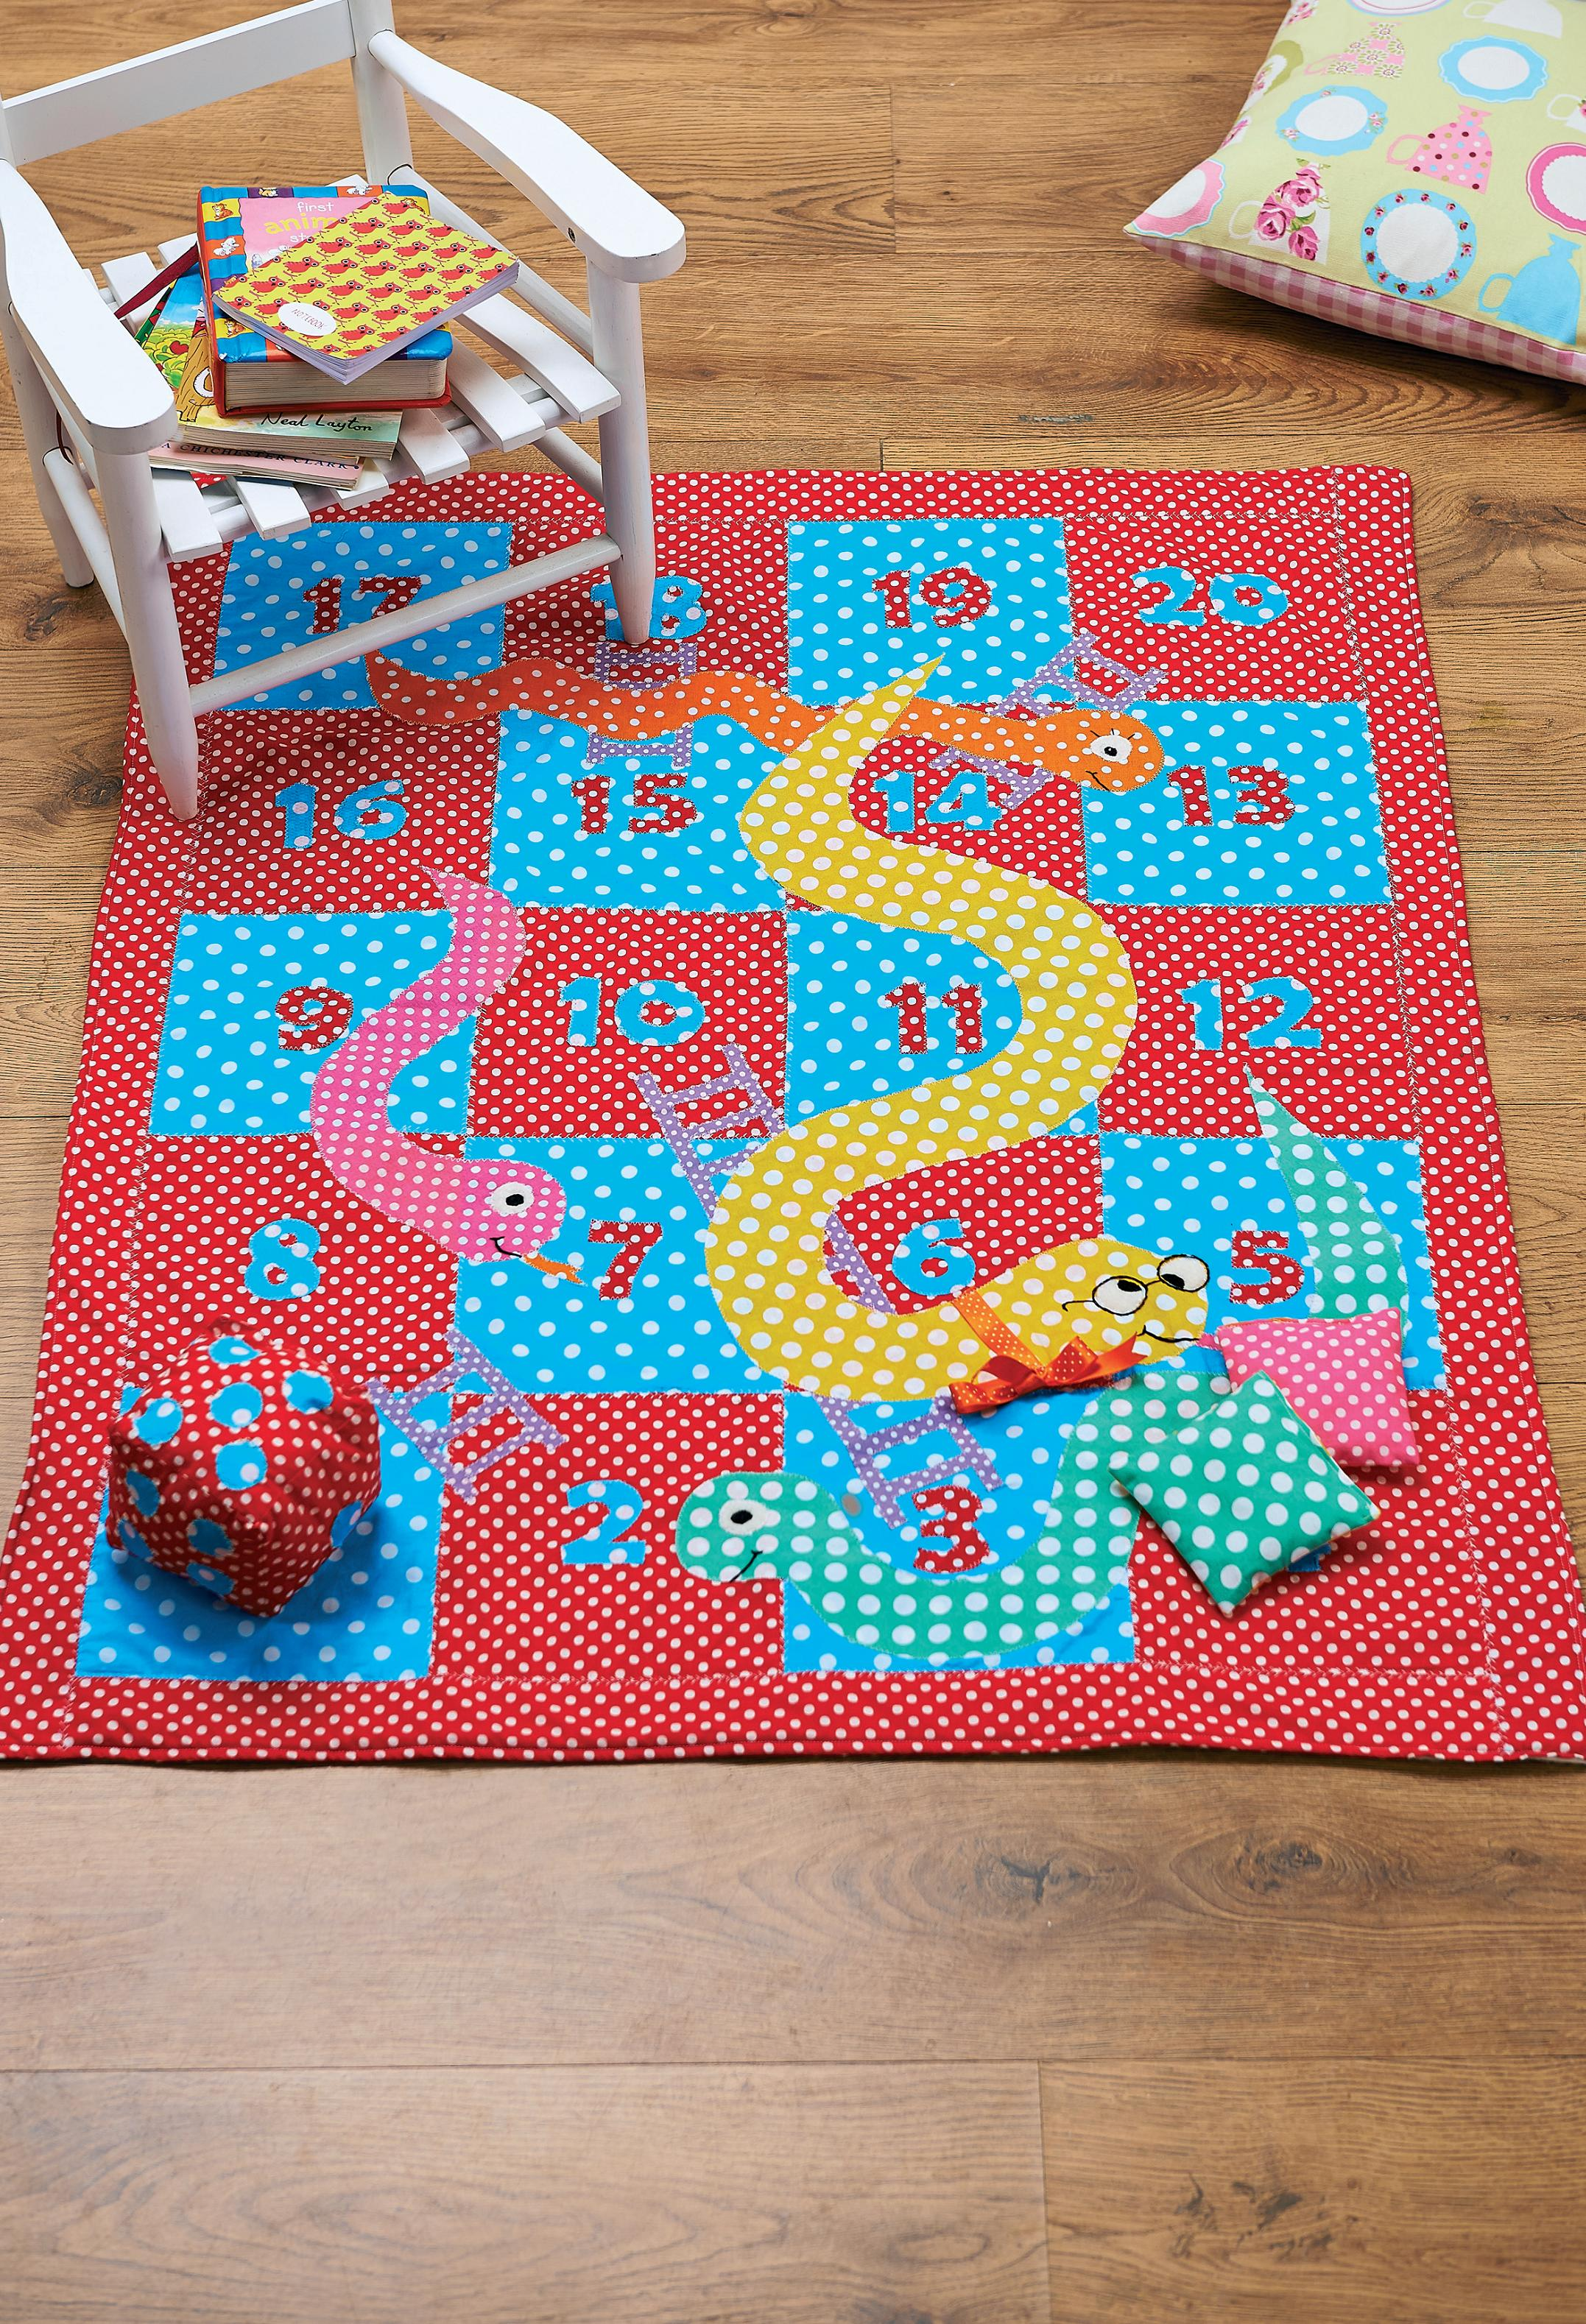 spotty snakes and ladders playmat - free sewing patterns